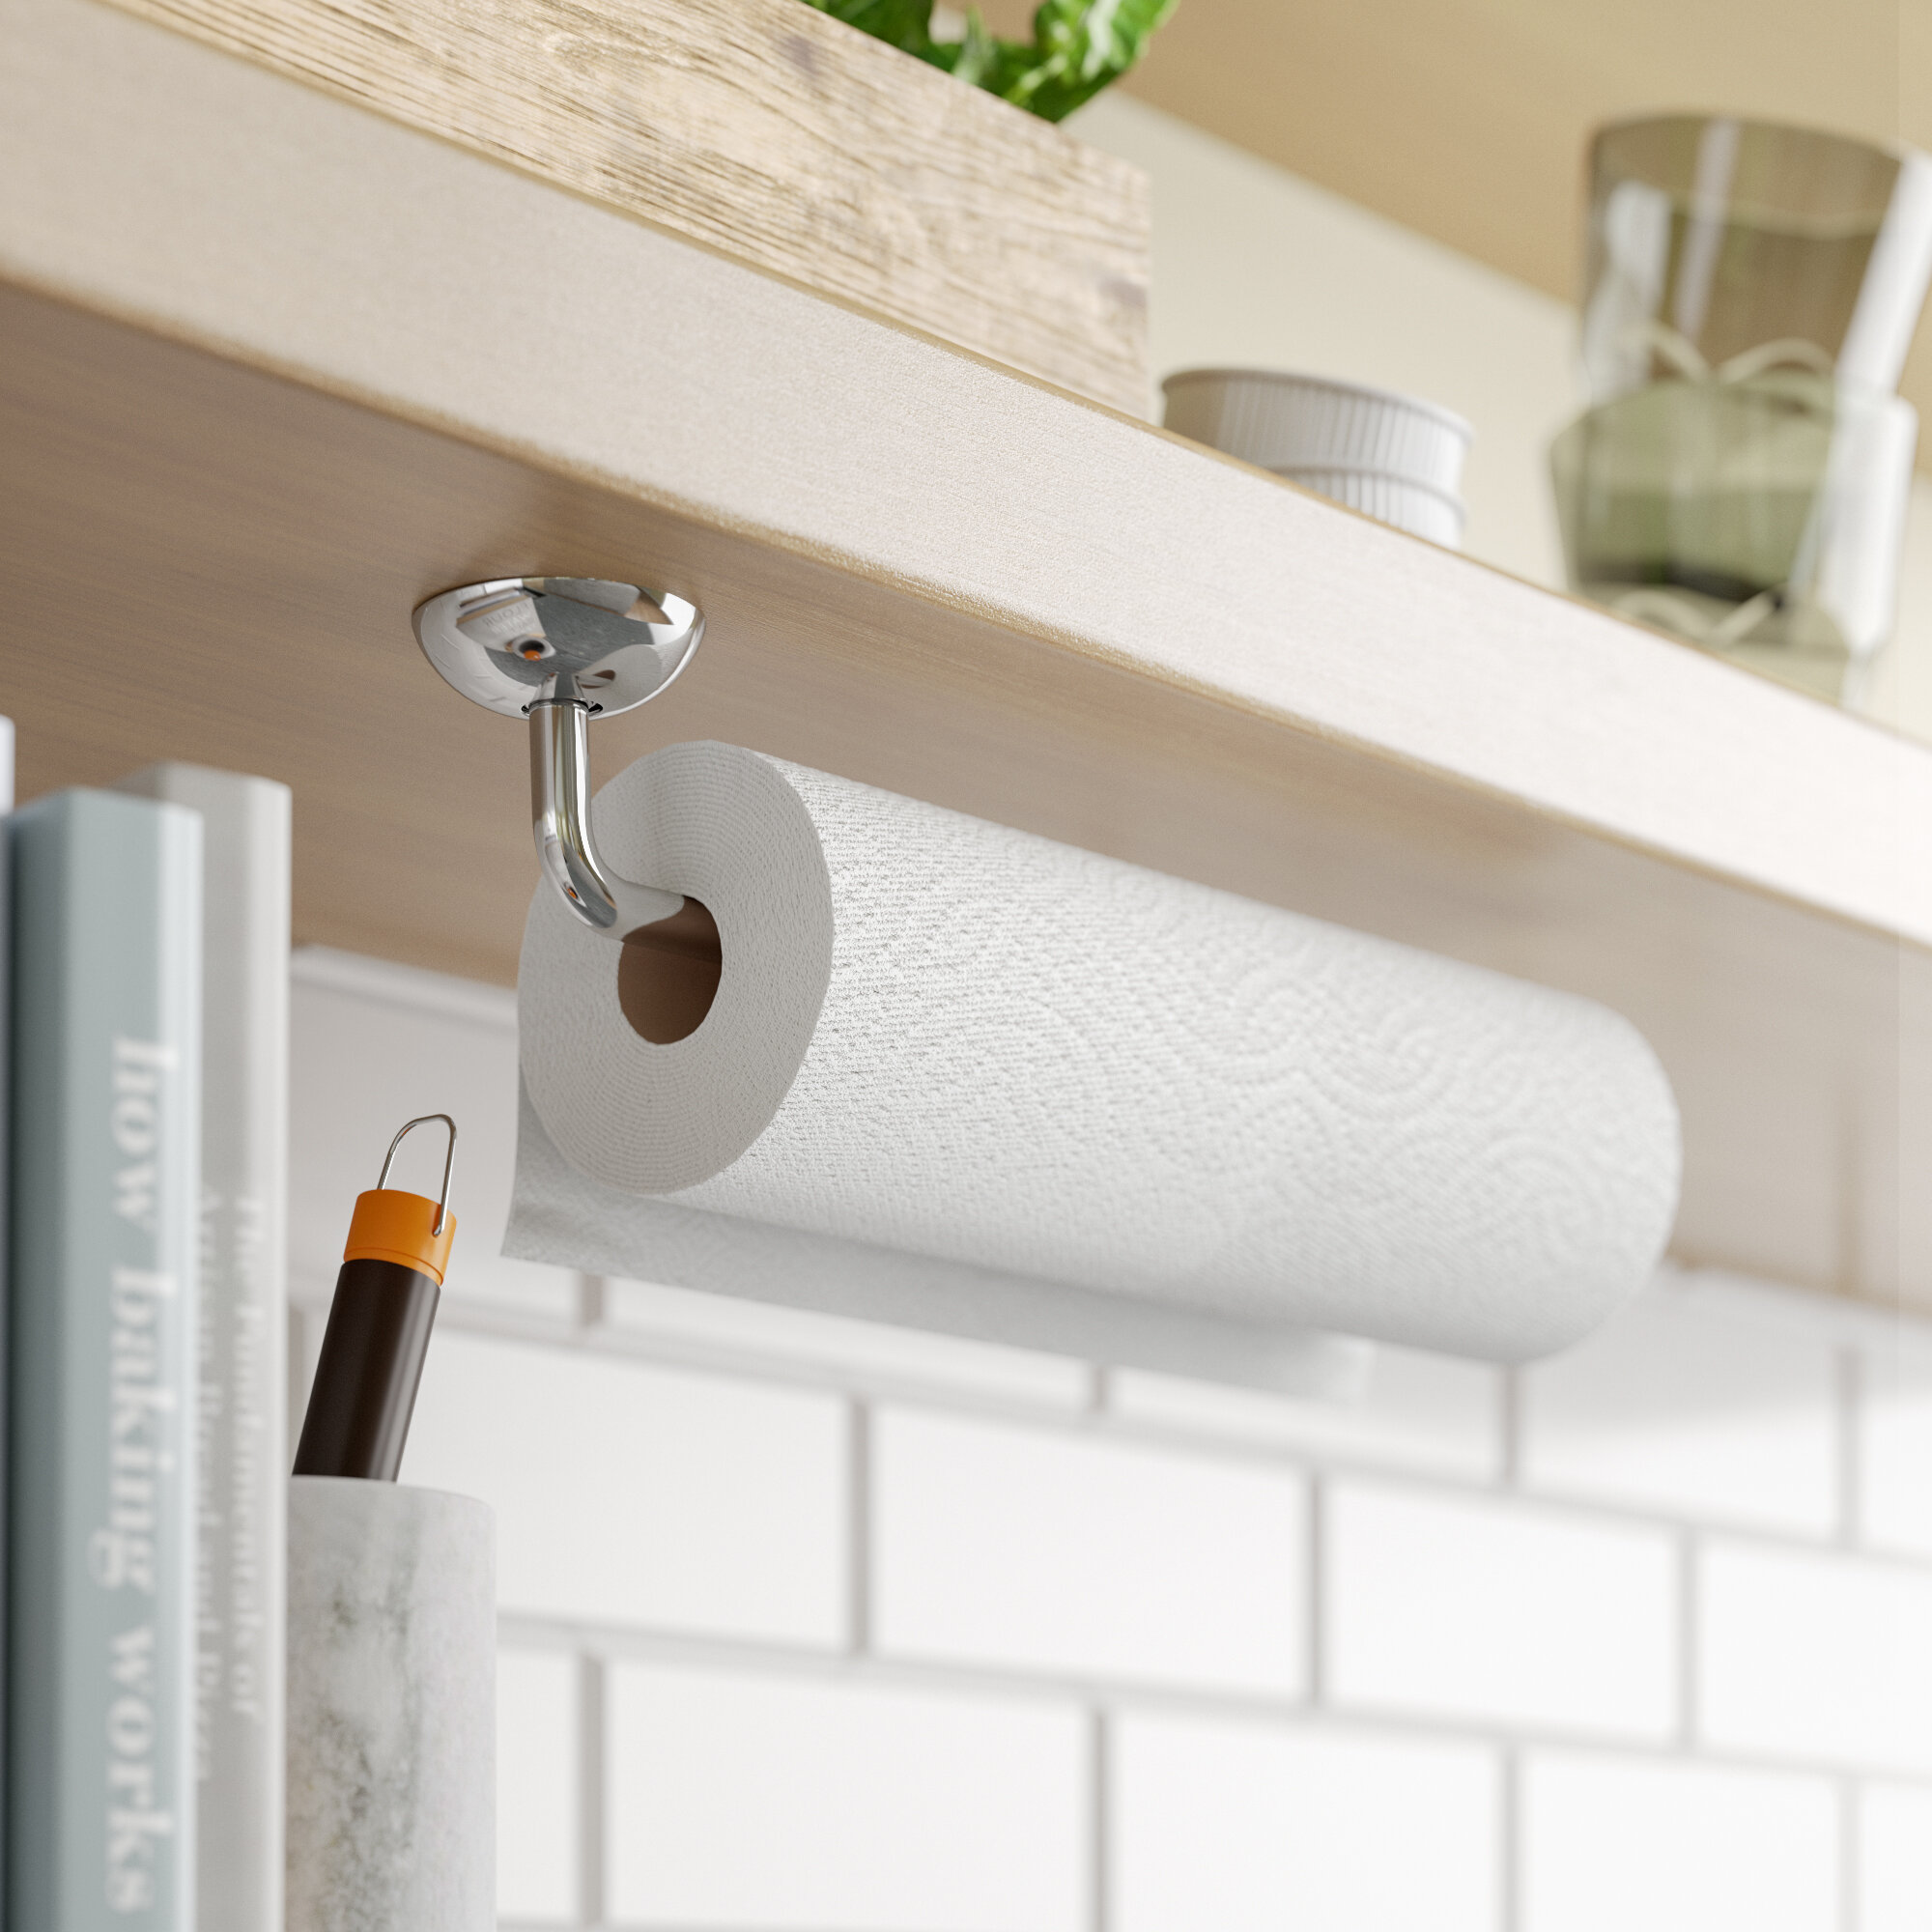 Rebrilliant Espana Wall Mount Paper Towel Holder Reviews Wayfair